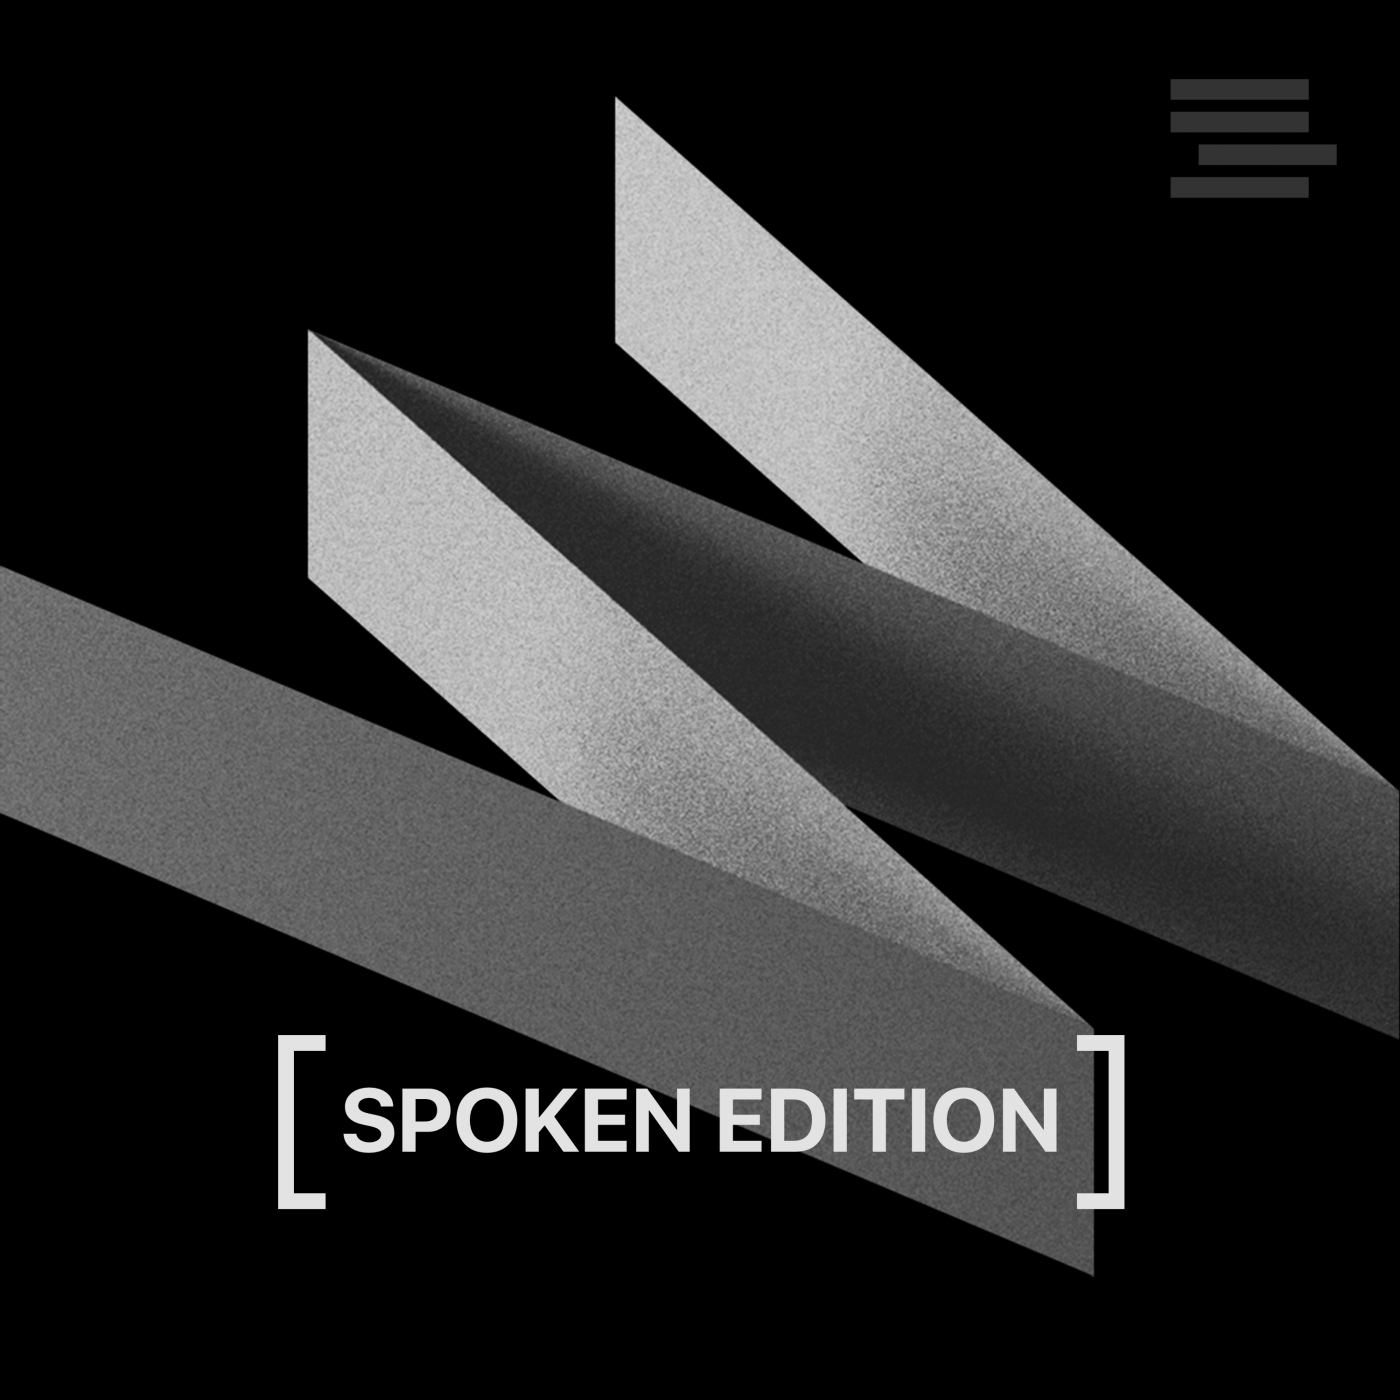 WIRED News – Spoken Edition by WIRED on Apple Podcasts